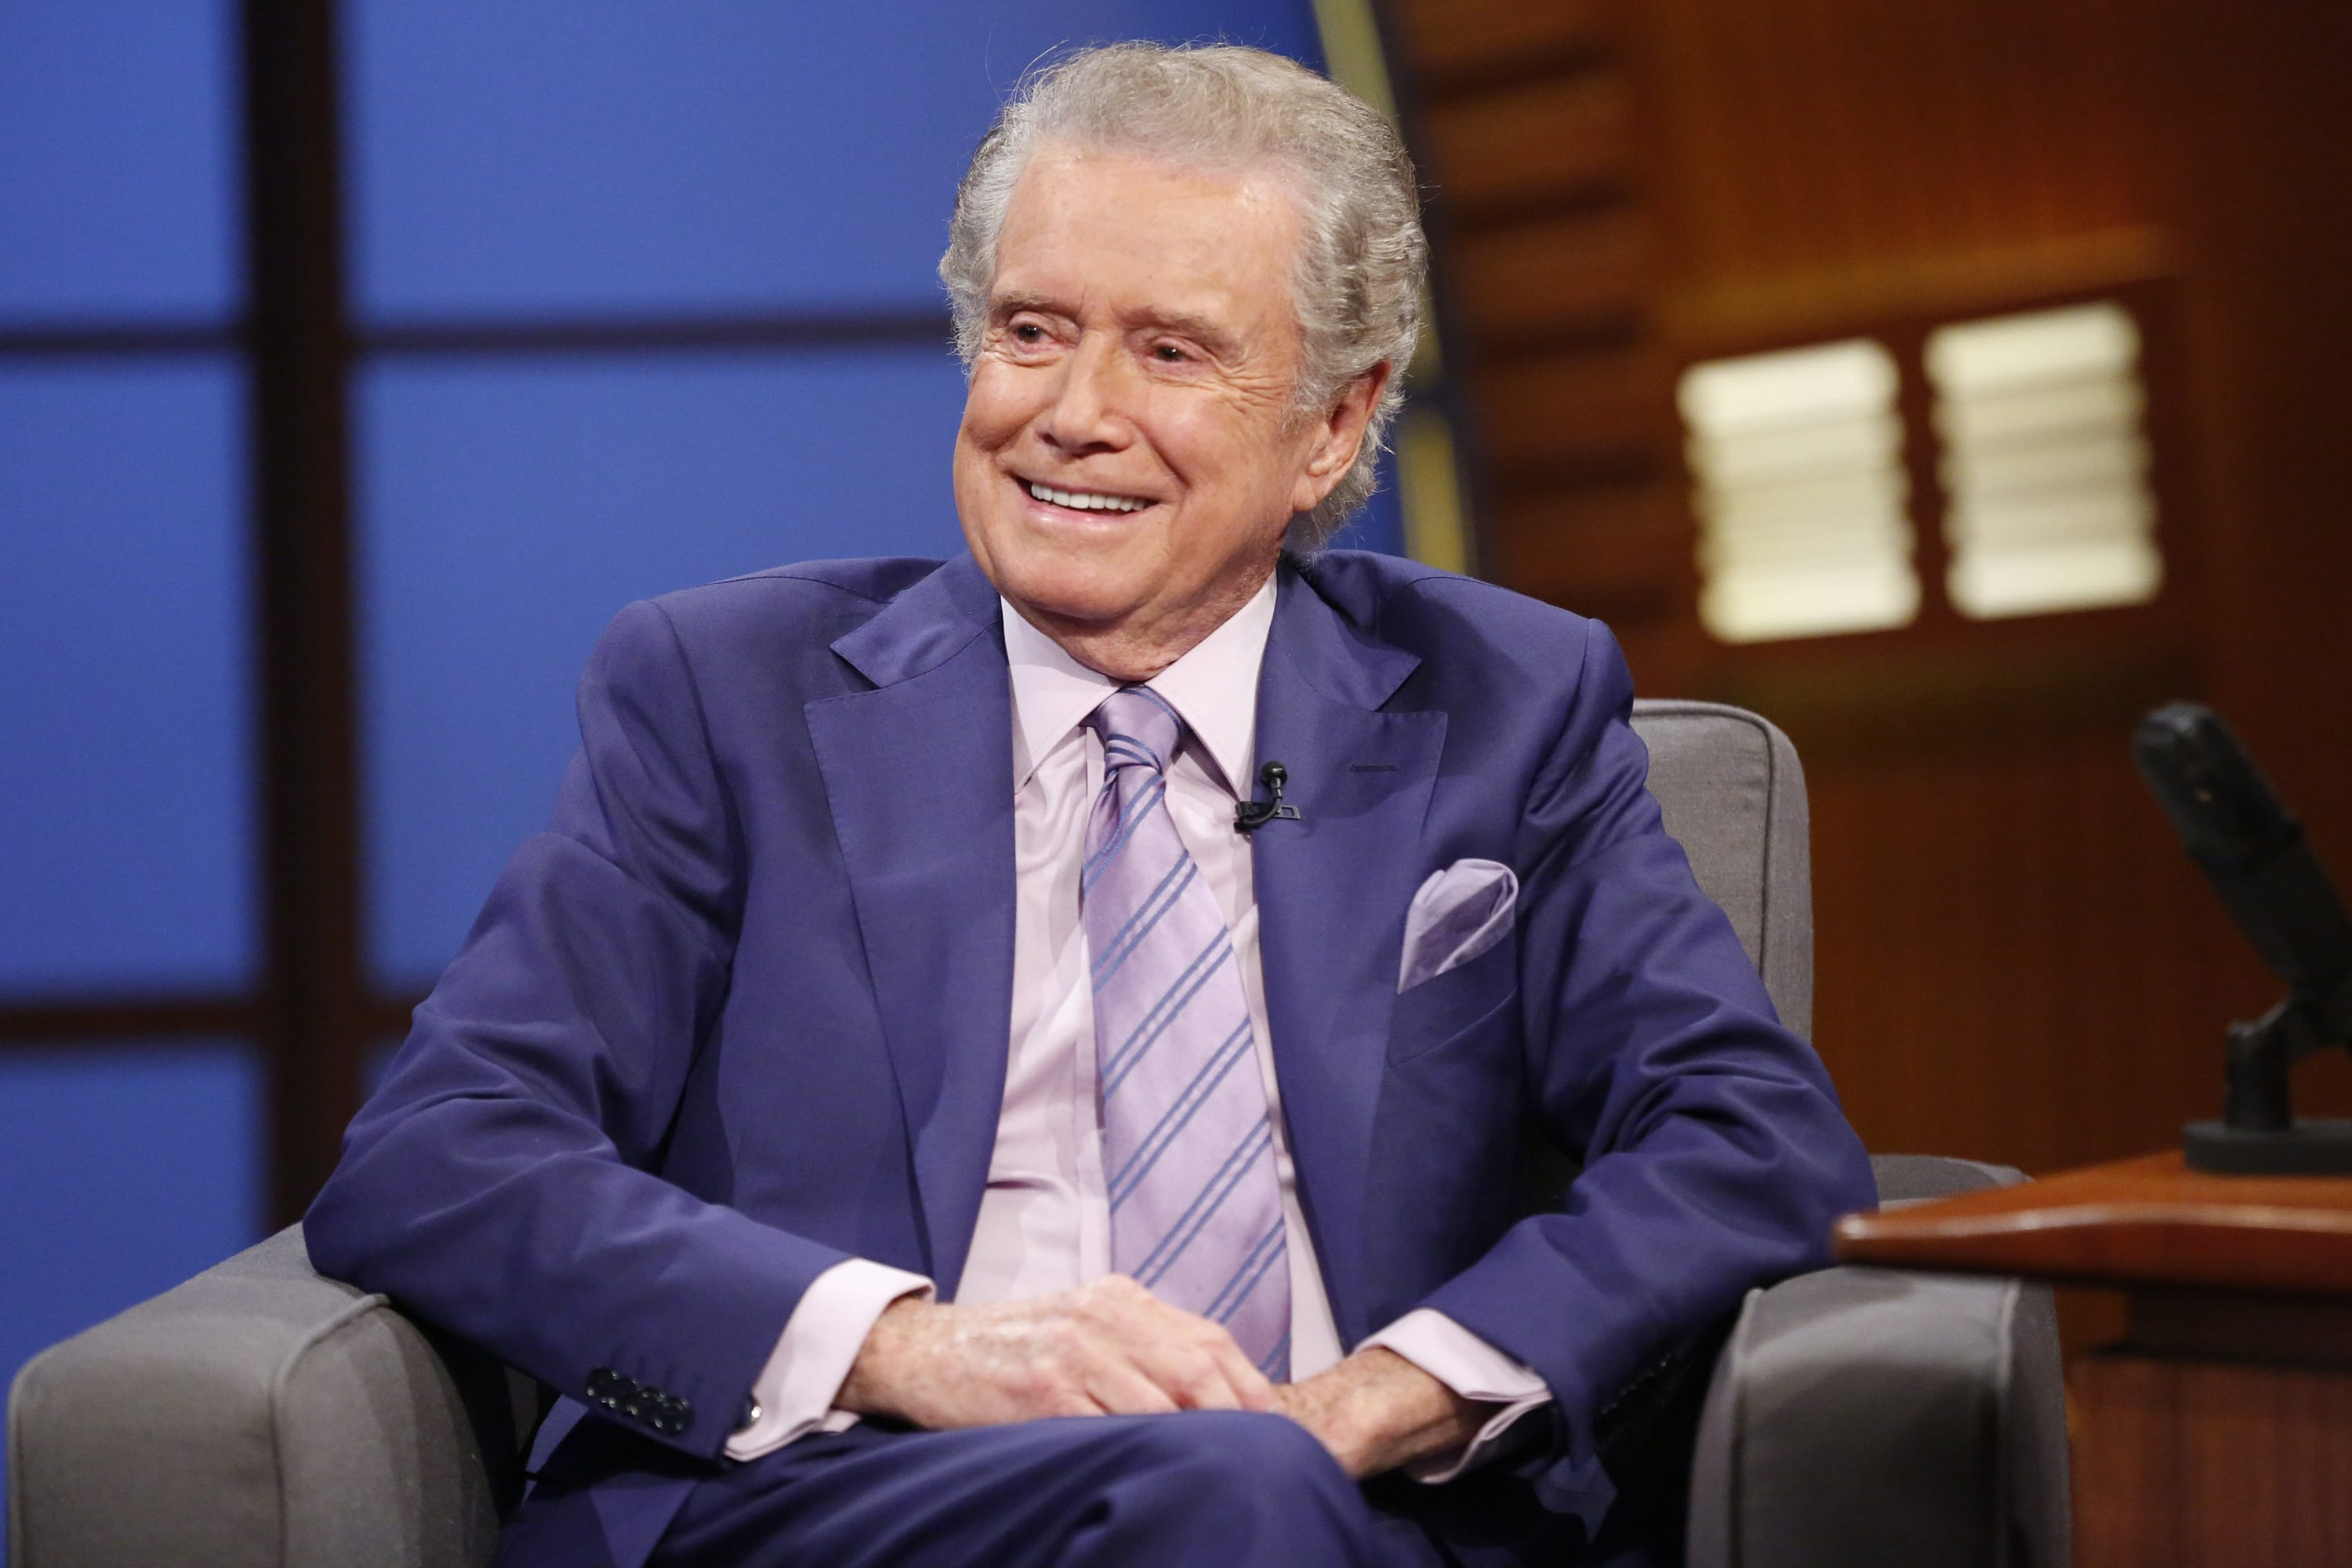 Regis Philbin, longtime television personality, dies at 88